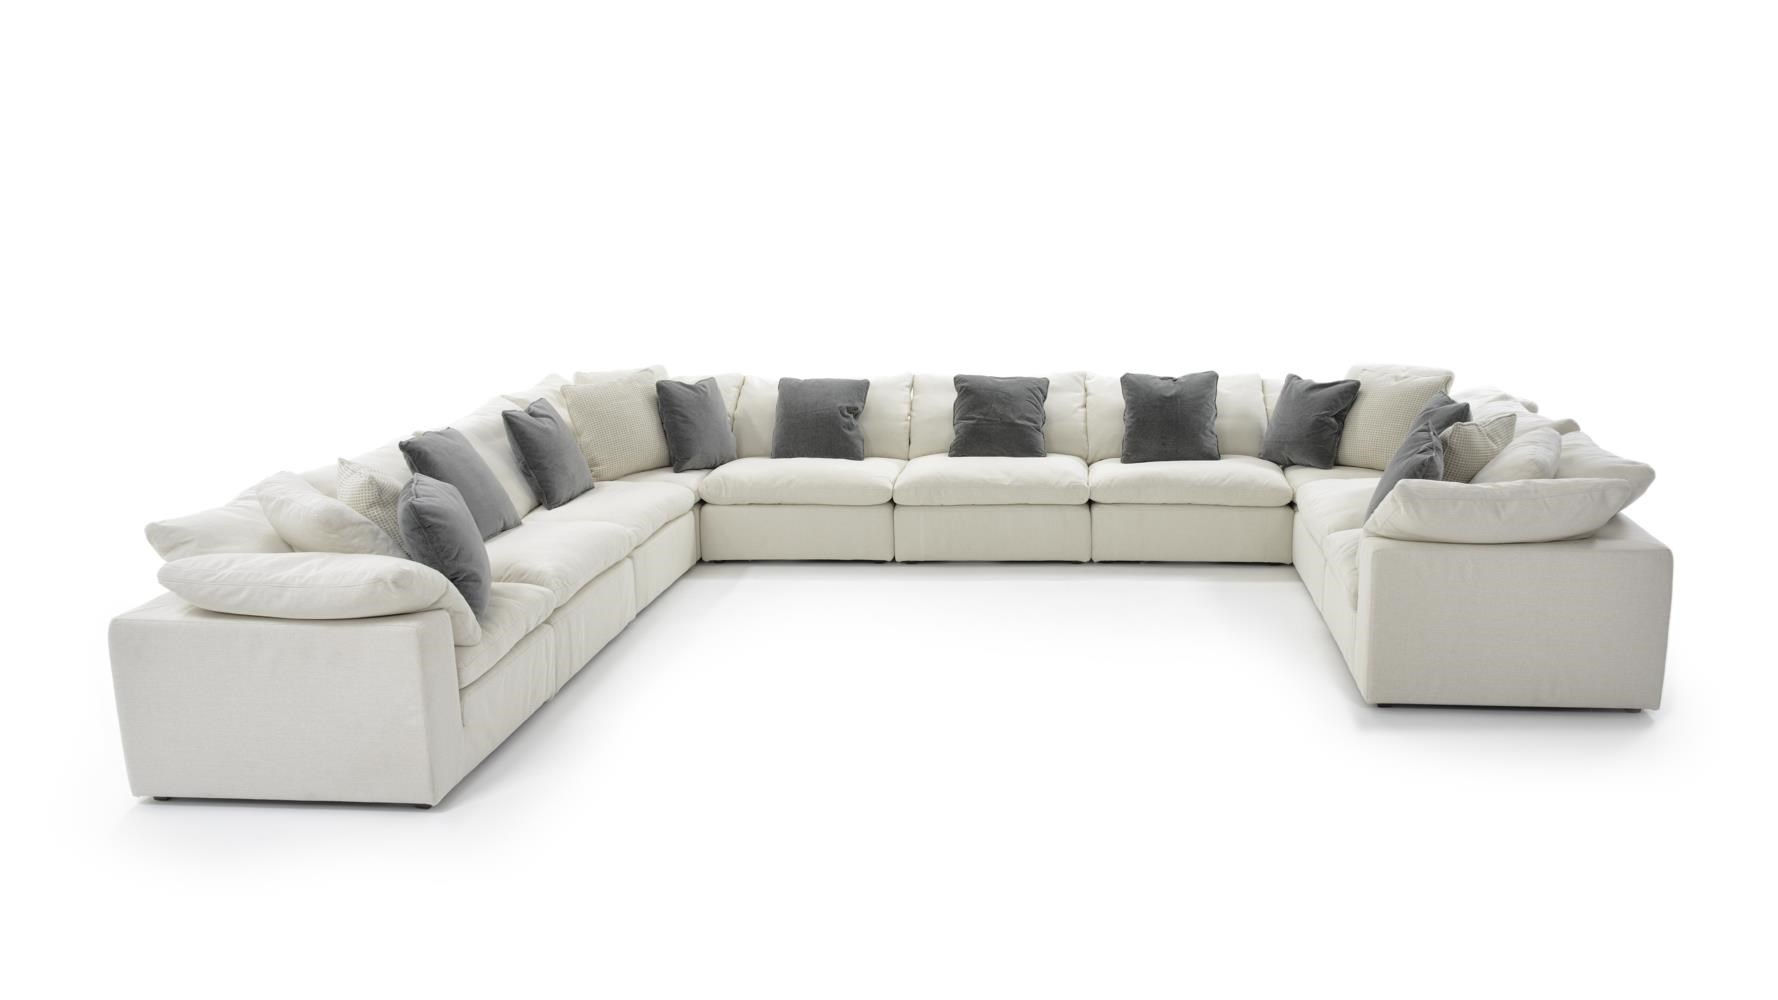 Palmer 10 Pc Sectional Sofa by Universal at Baer's Furniture